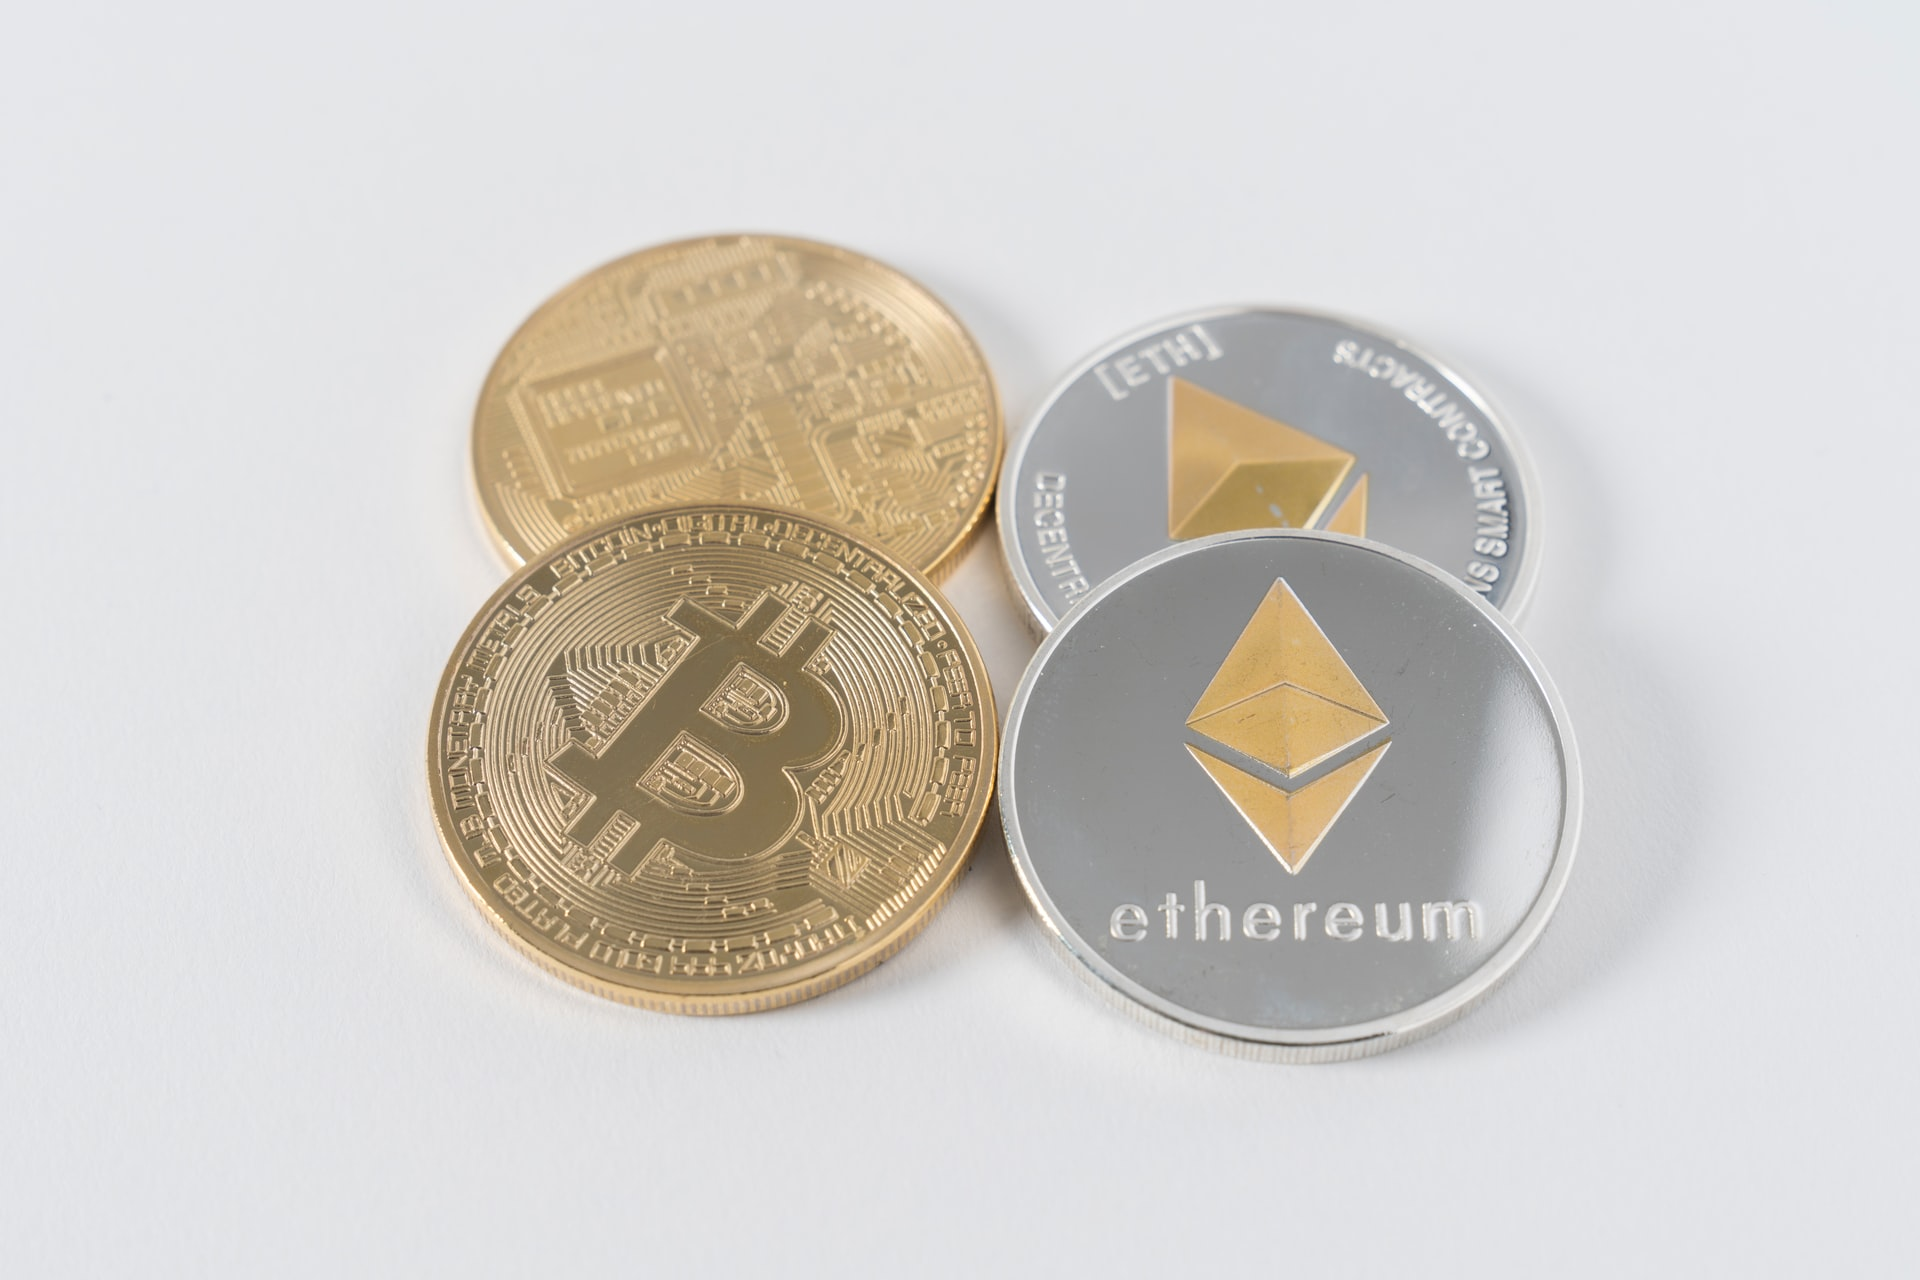 Image of two bitcoins next to two ethereum coins to illustrate the idea of what is ethereum and its differences to bitcoin.